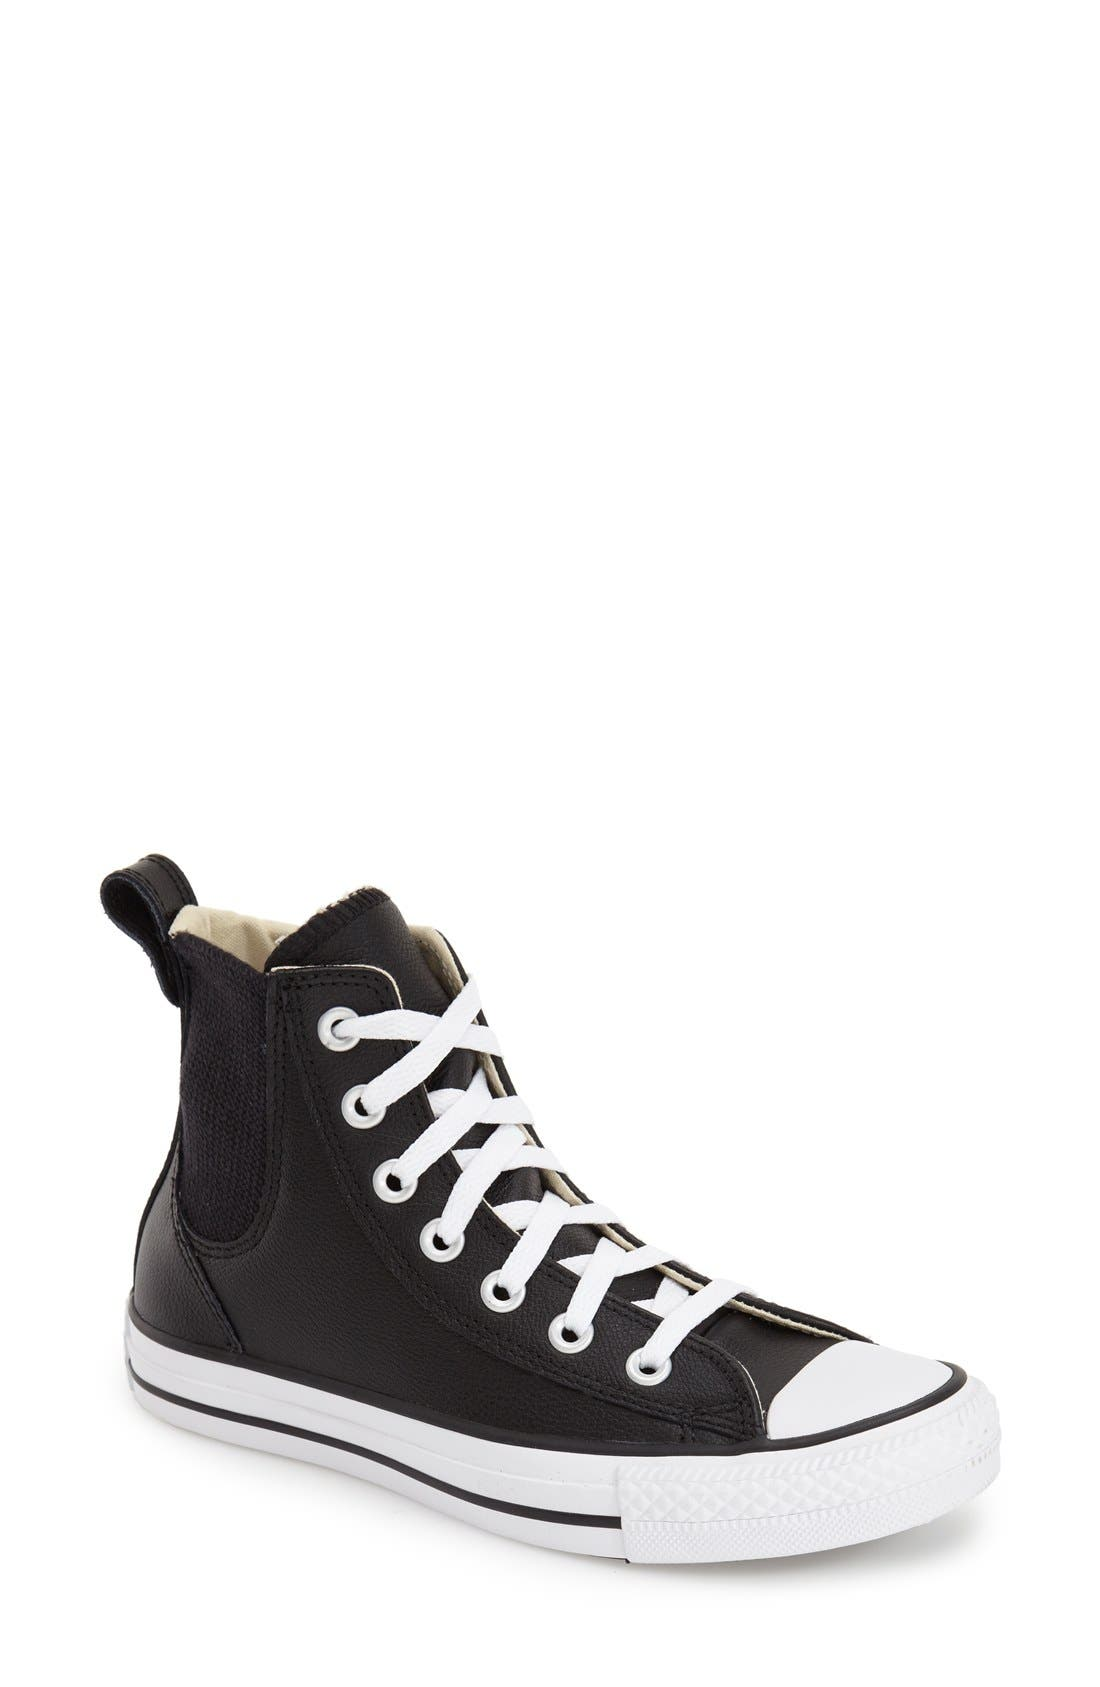 Main Image - Converse Chuck Taylor® All Star® 'Chelsee' High Top Sneaker (Women)